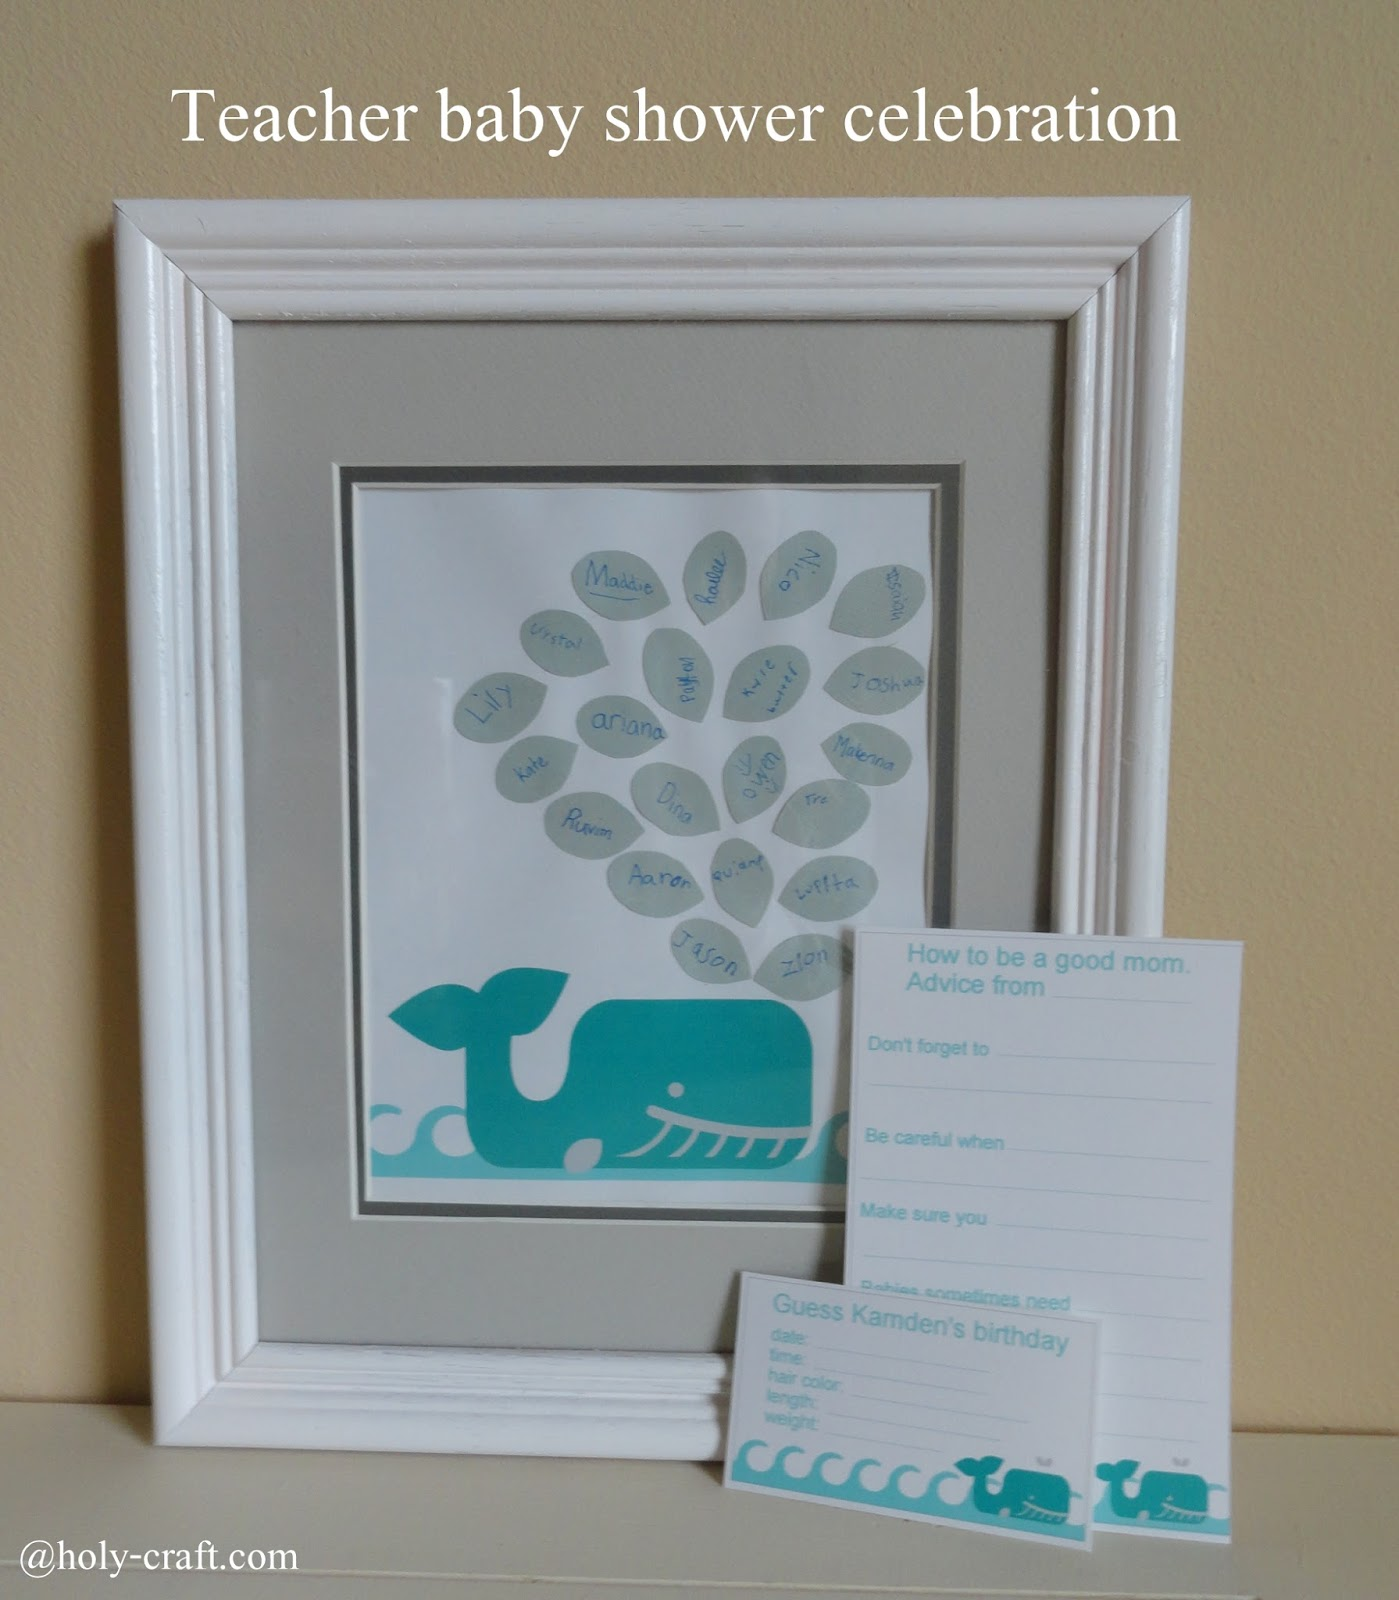 Teacher classroom baby shower celebration Rachel Teodoro